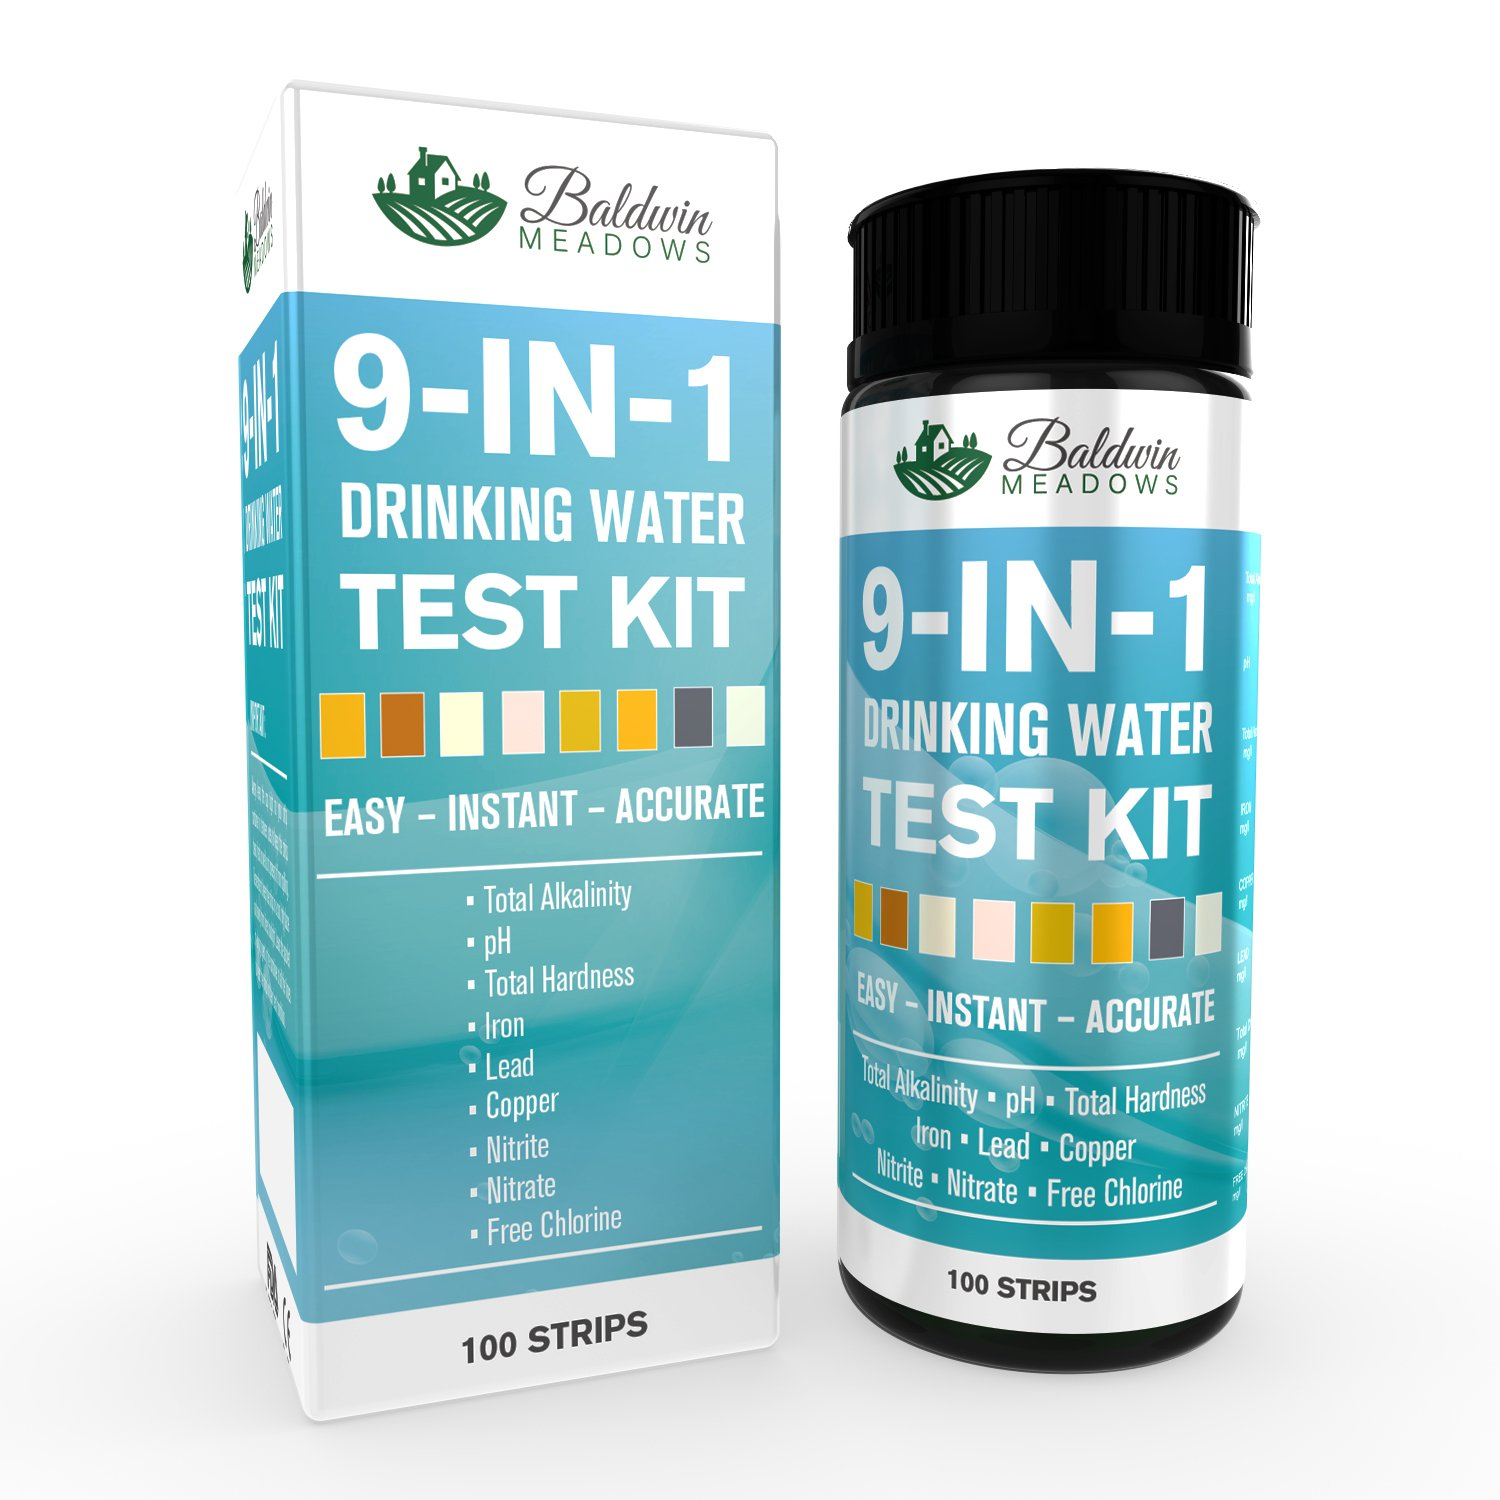 Drinking Water Test Kit 9 in 1 - Best Water Quality Test for Well Water and Tap Water - Determines pH - Lead - Total Hardness - Copper - Alkalinity & More - 100 Ct - Accurate Results in Seconds!